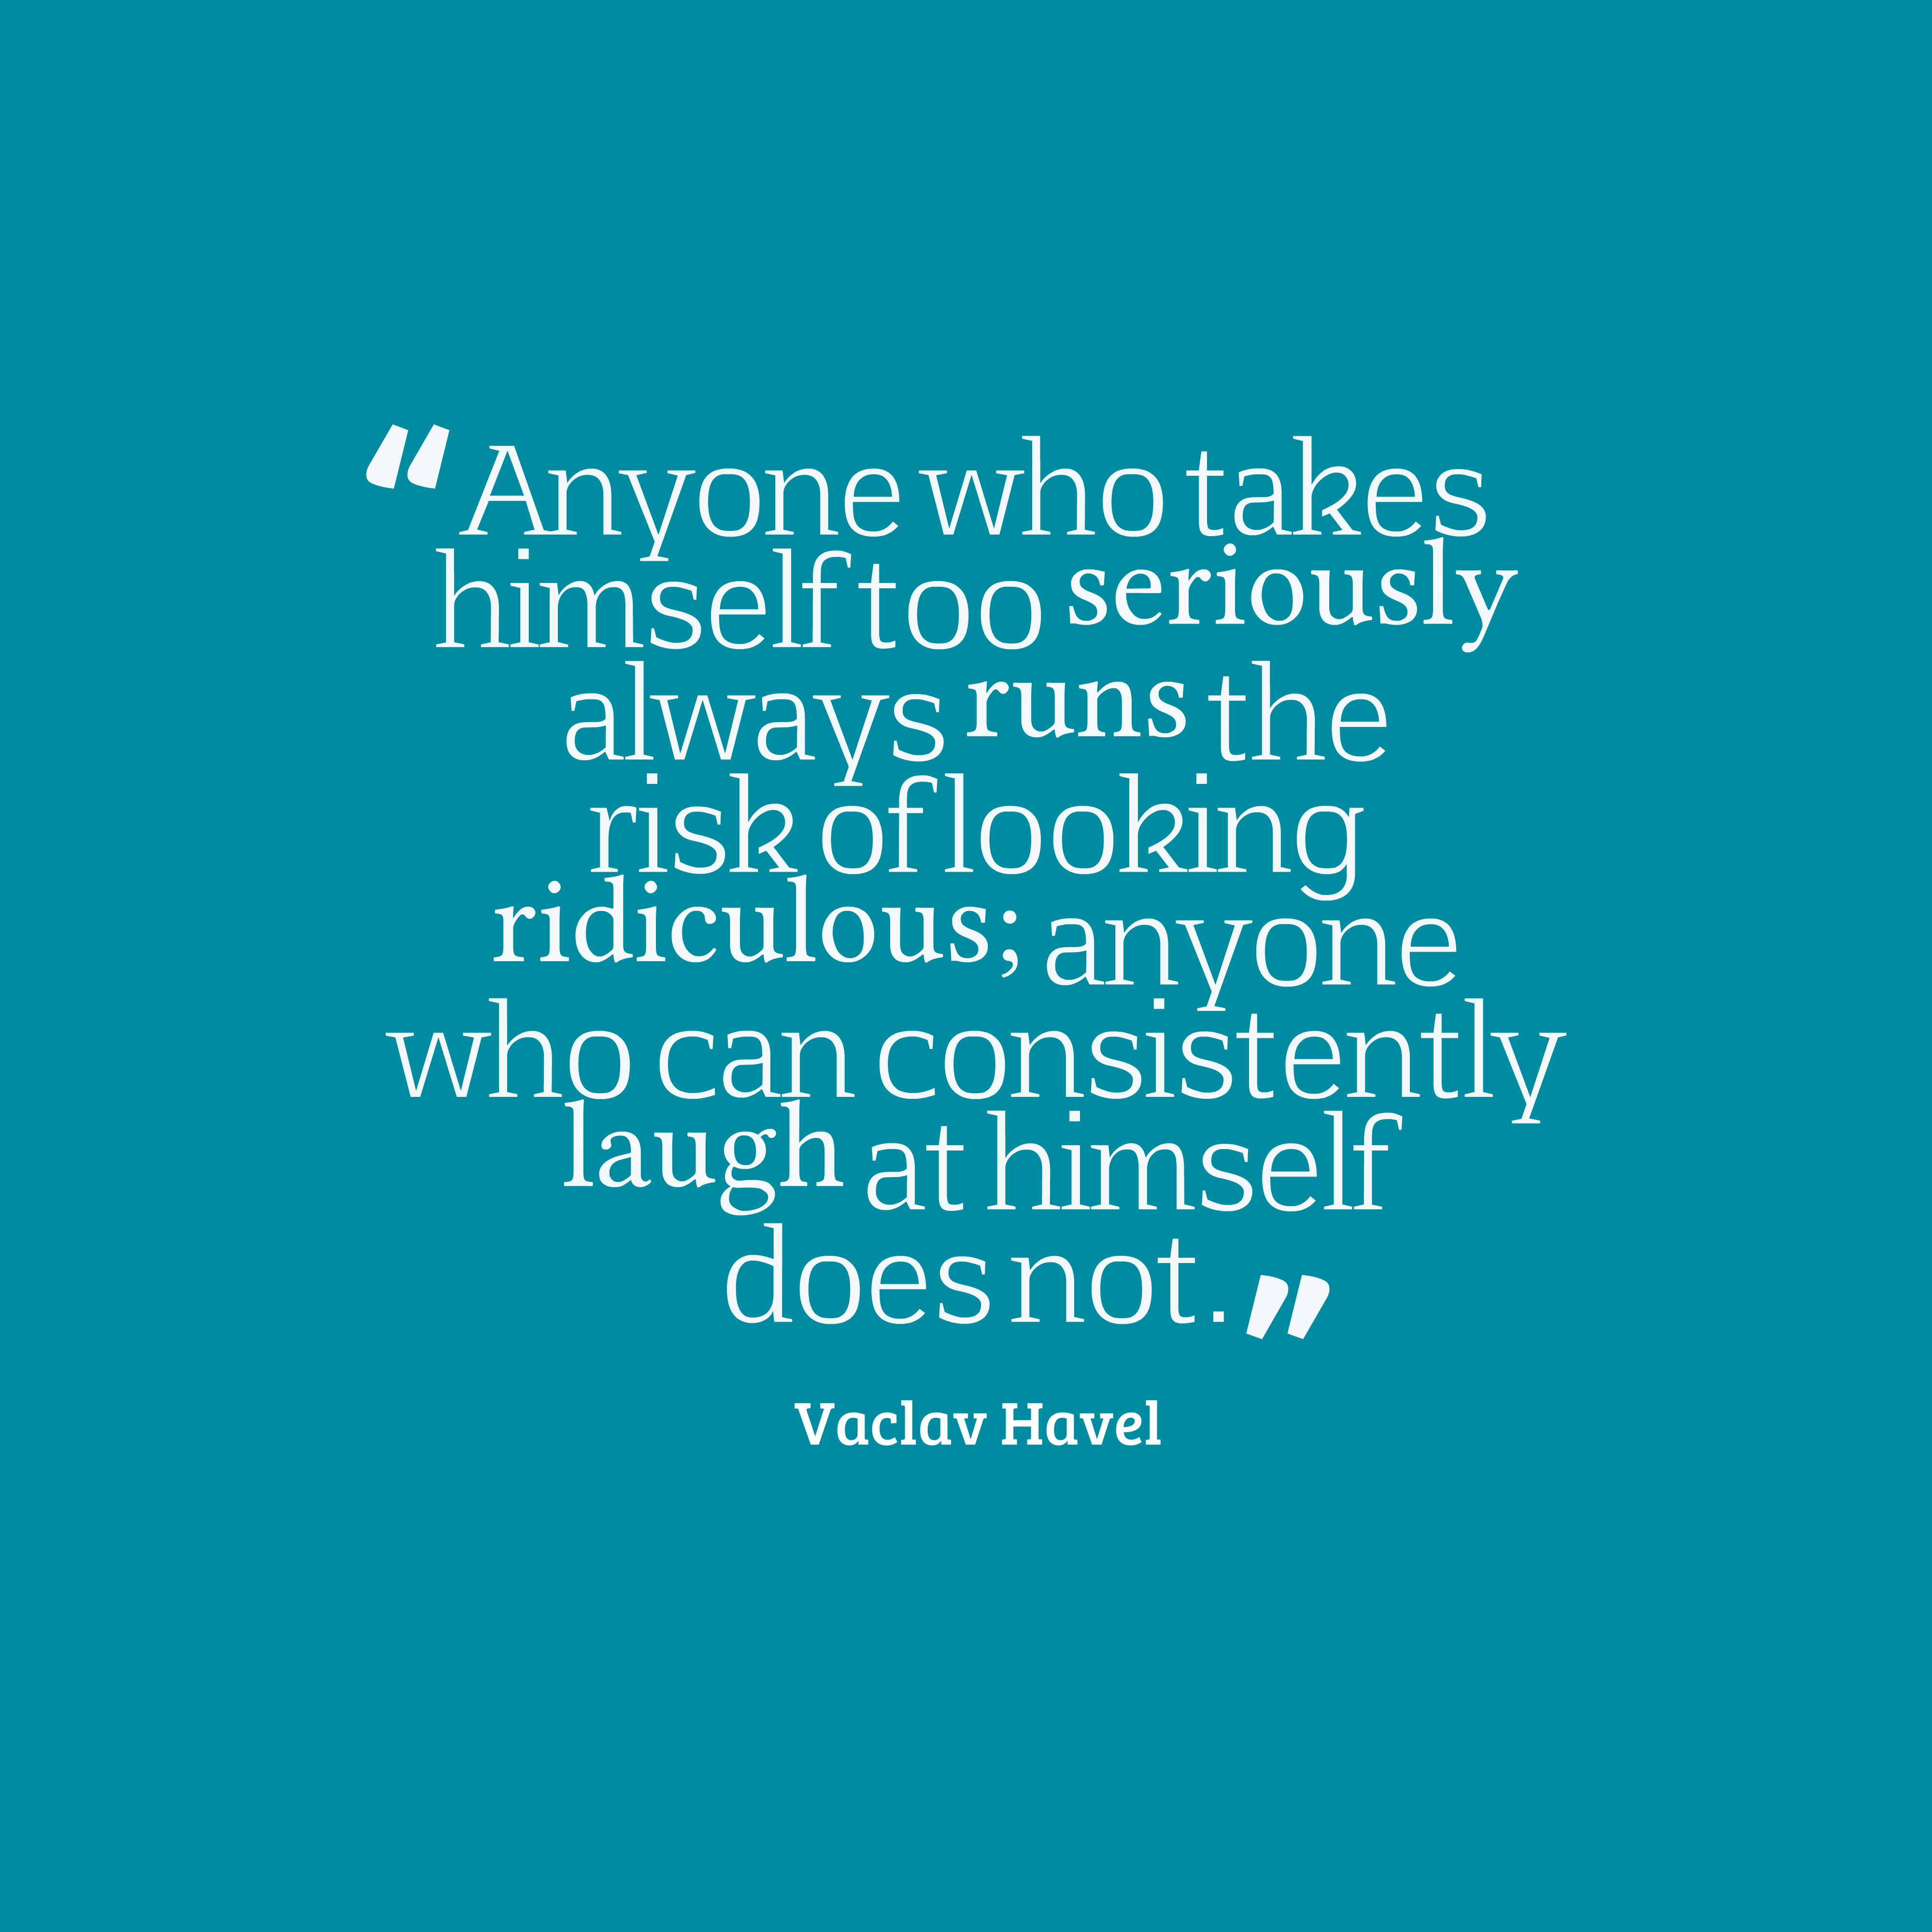 Quotes image of Anyone who takes himself too seriously always runs the risk of looking ridiculous; anyone who can consistently laugh at himself does not.